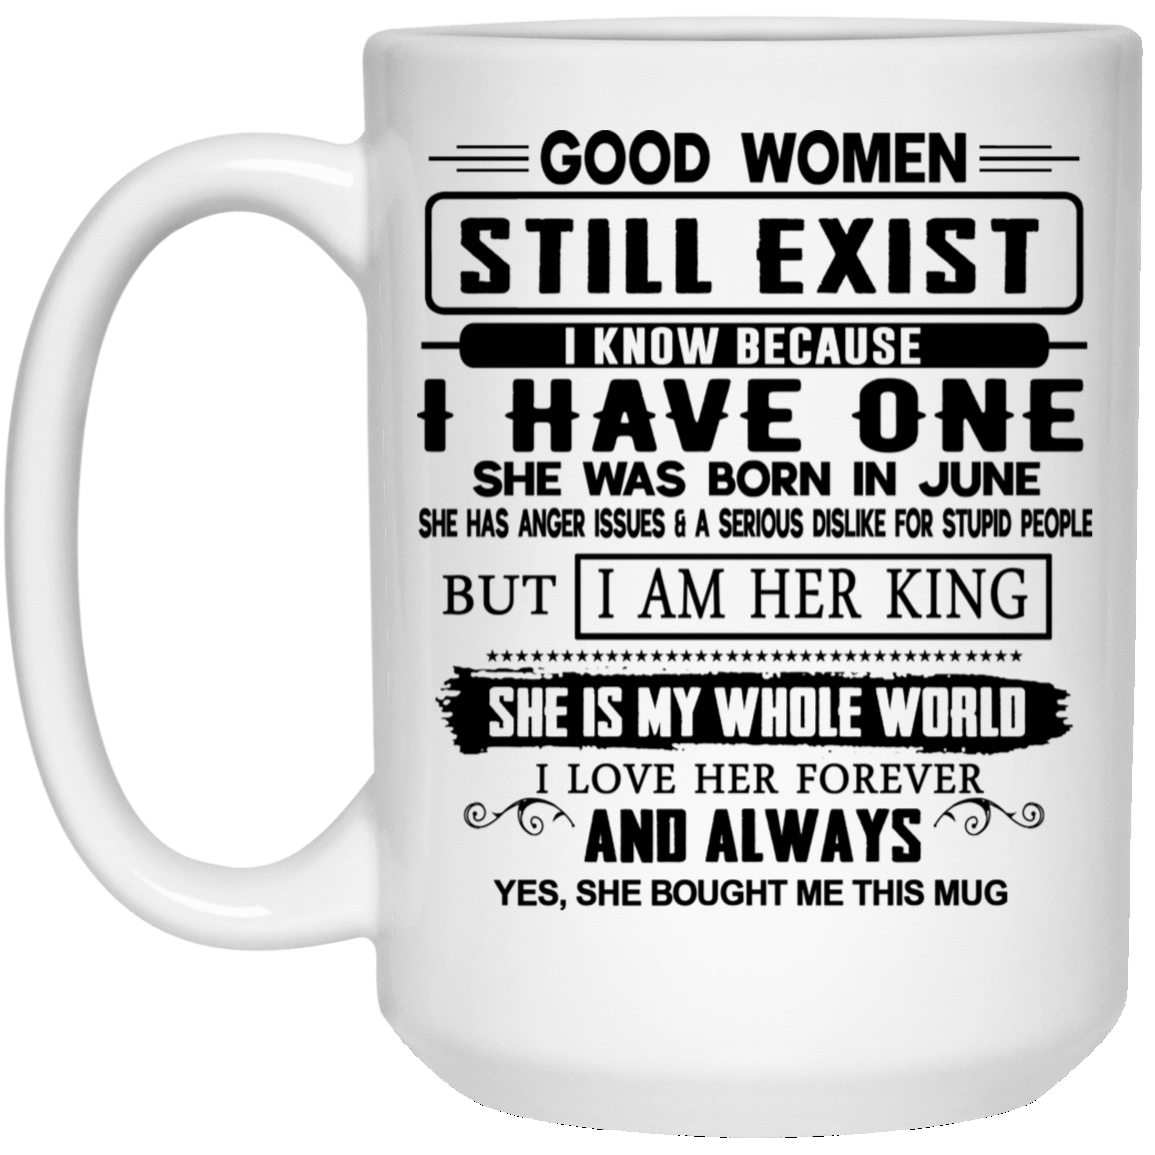 Good Women Still Exist I Have One He Was Born In June Mug 1032-9816-76399342-47456 - Tee Ript